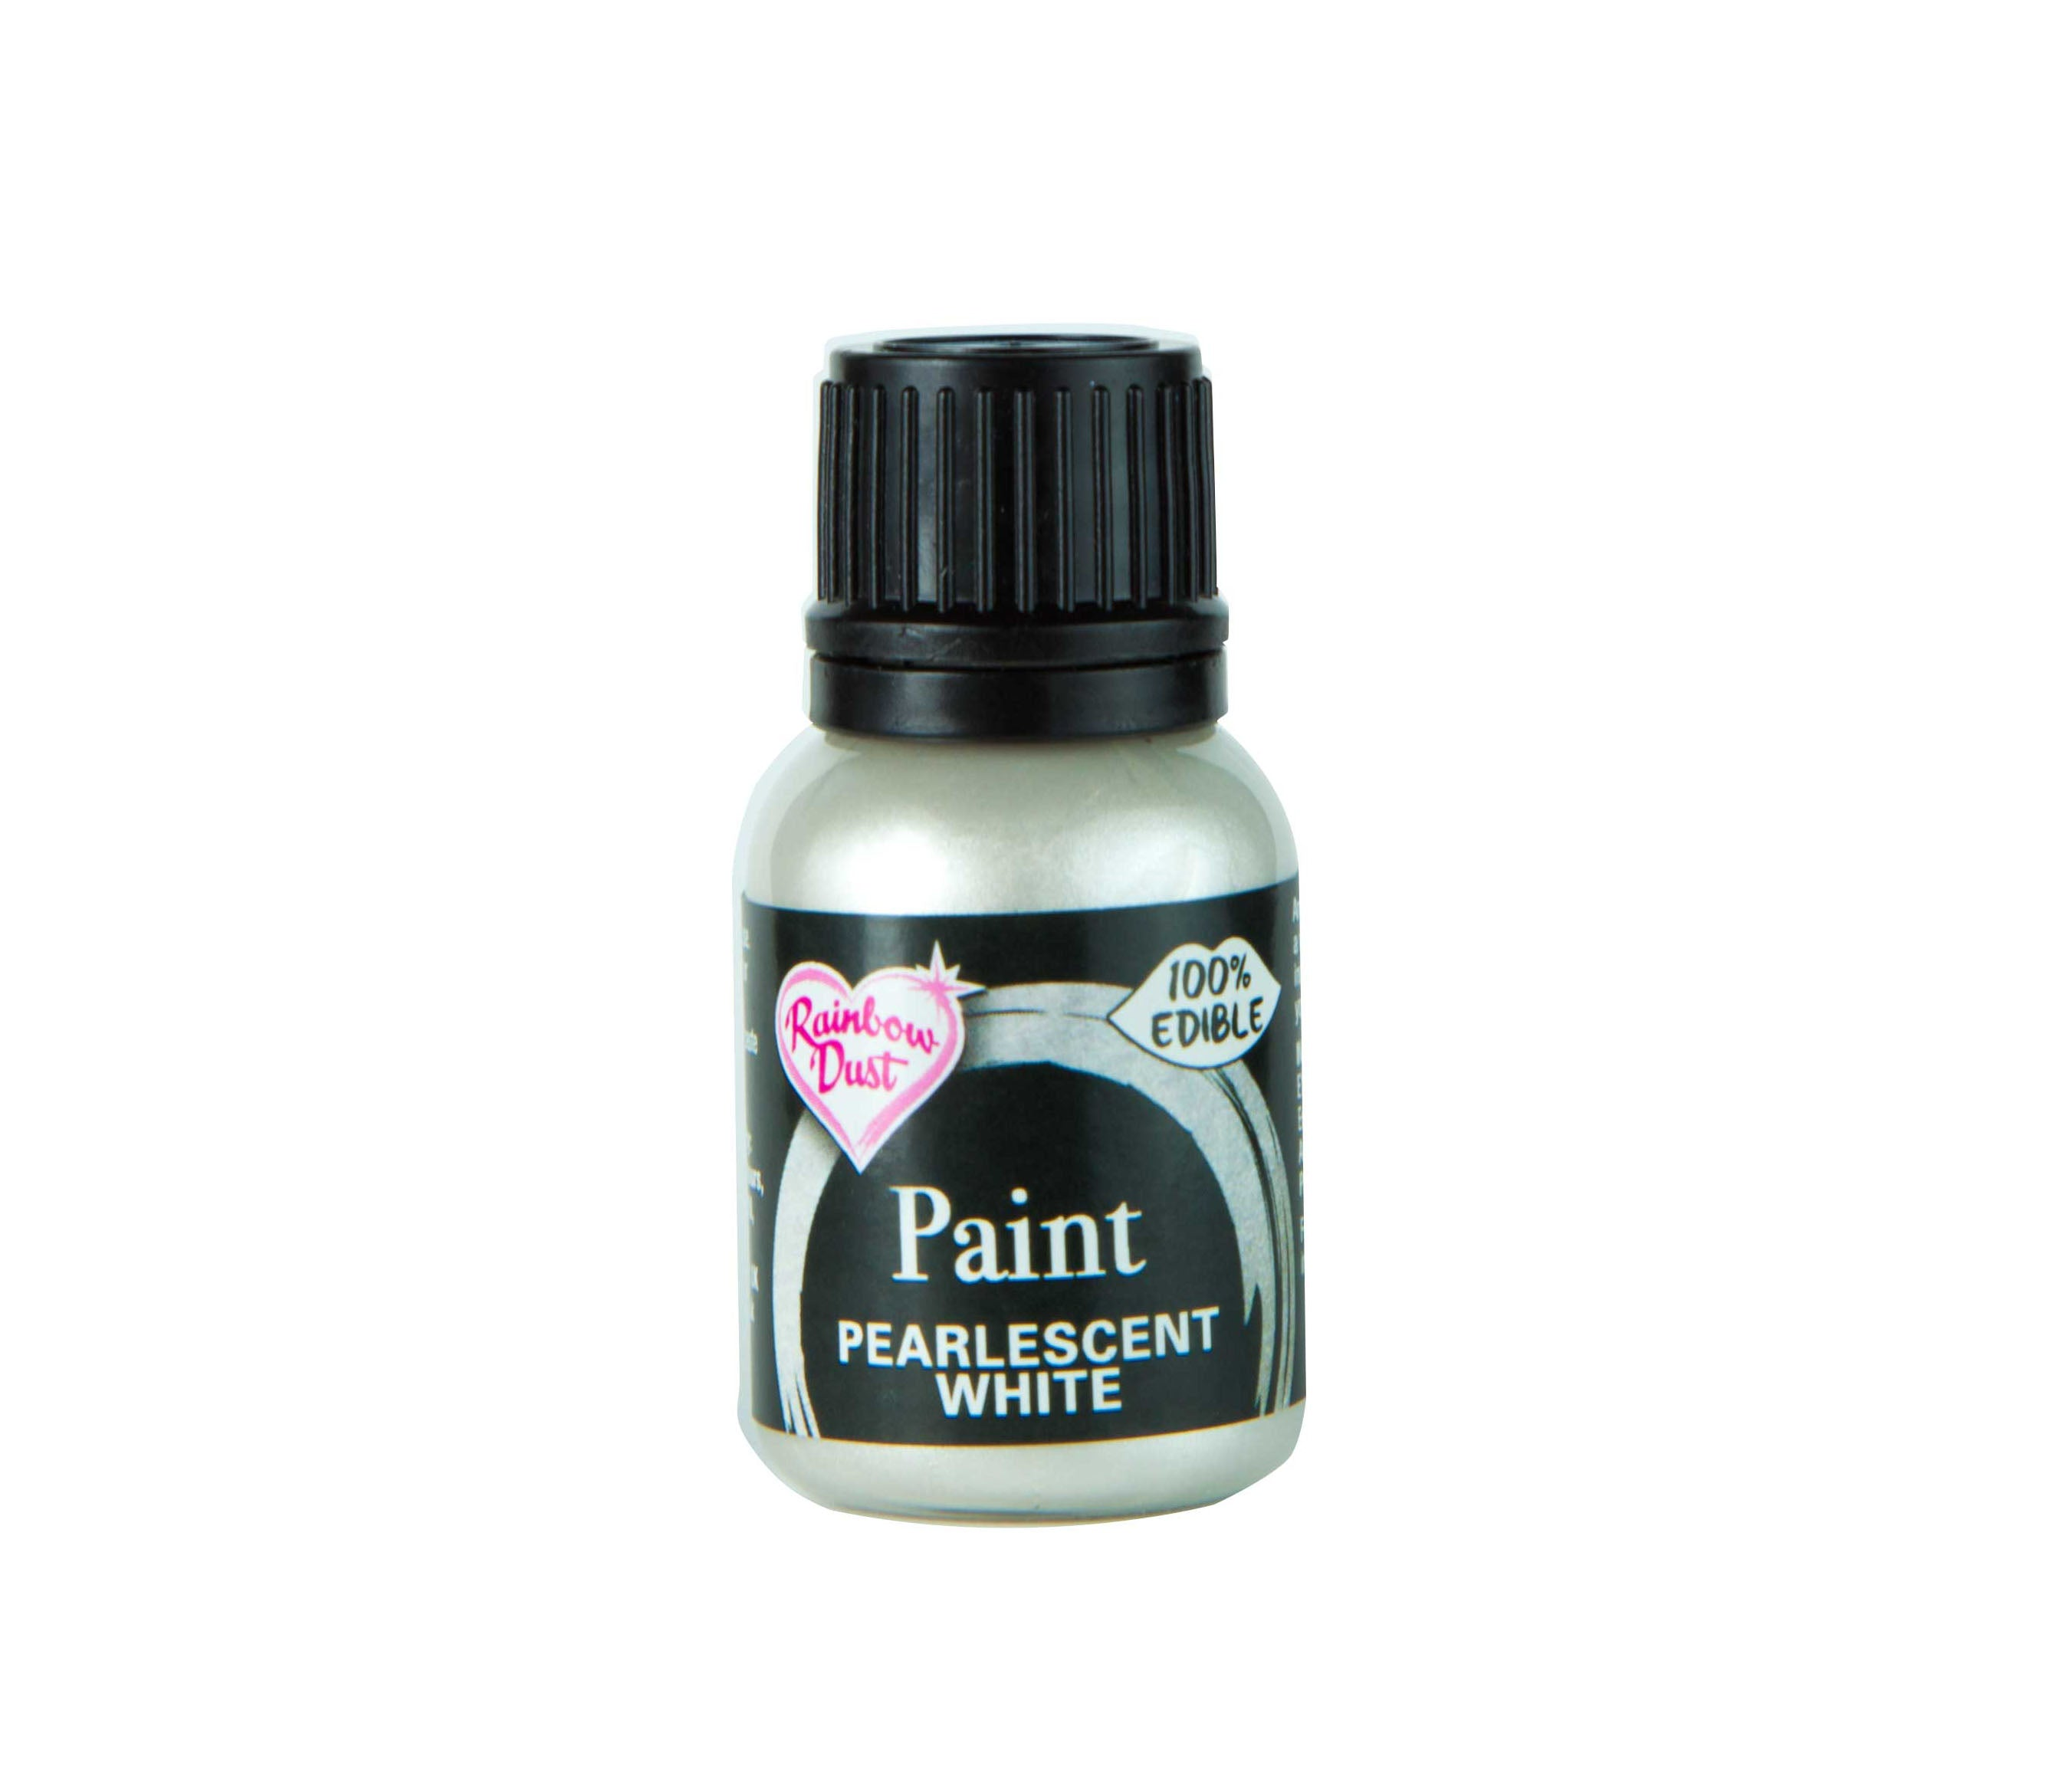 Edible Paints Pearl White 25g